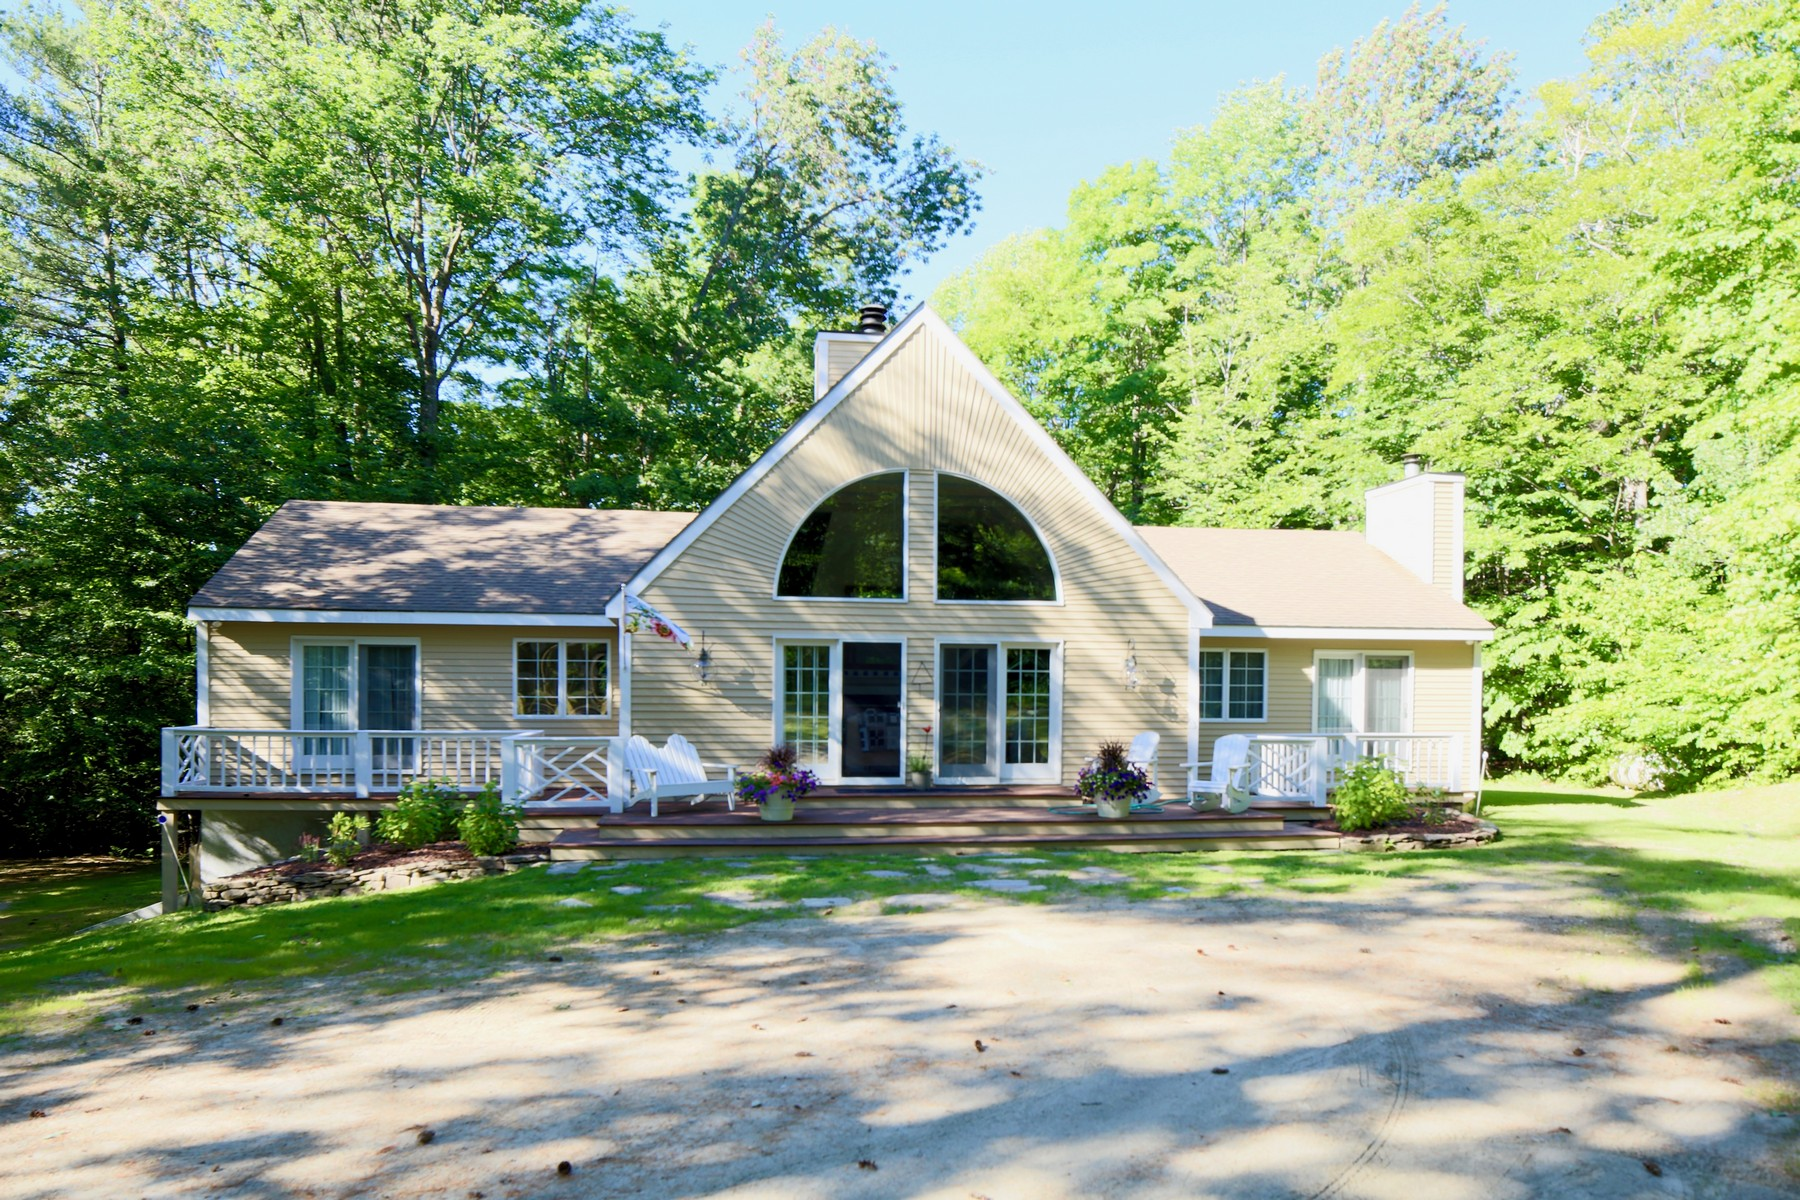 Single Family Homes for Sale at South Hill Contemporary 113 Ellison Loop Ludlow, Vermont 05149 United States